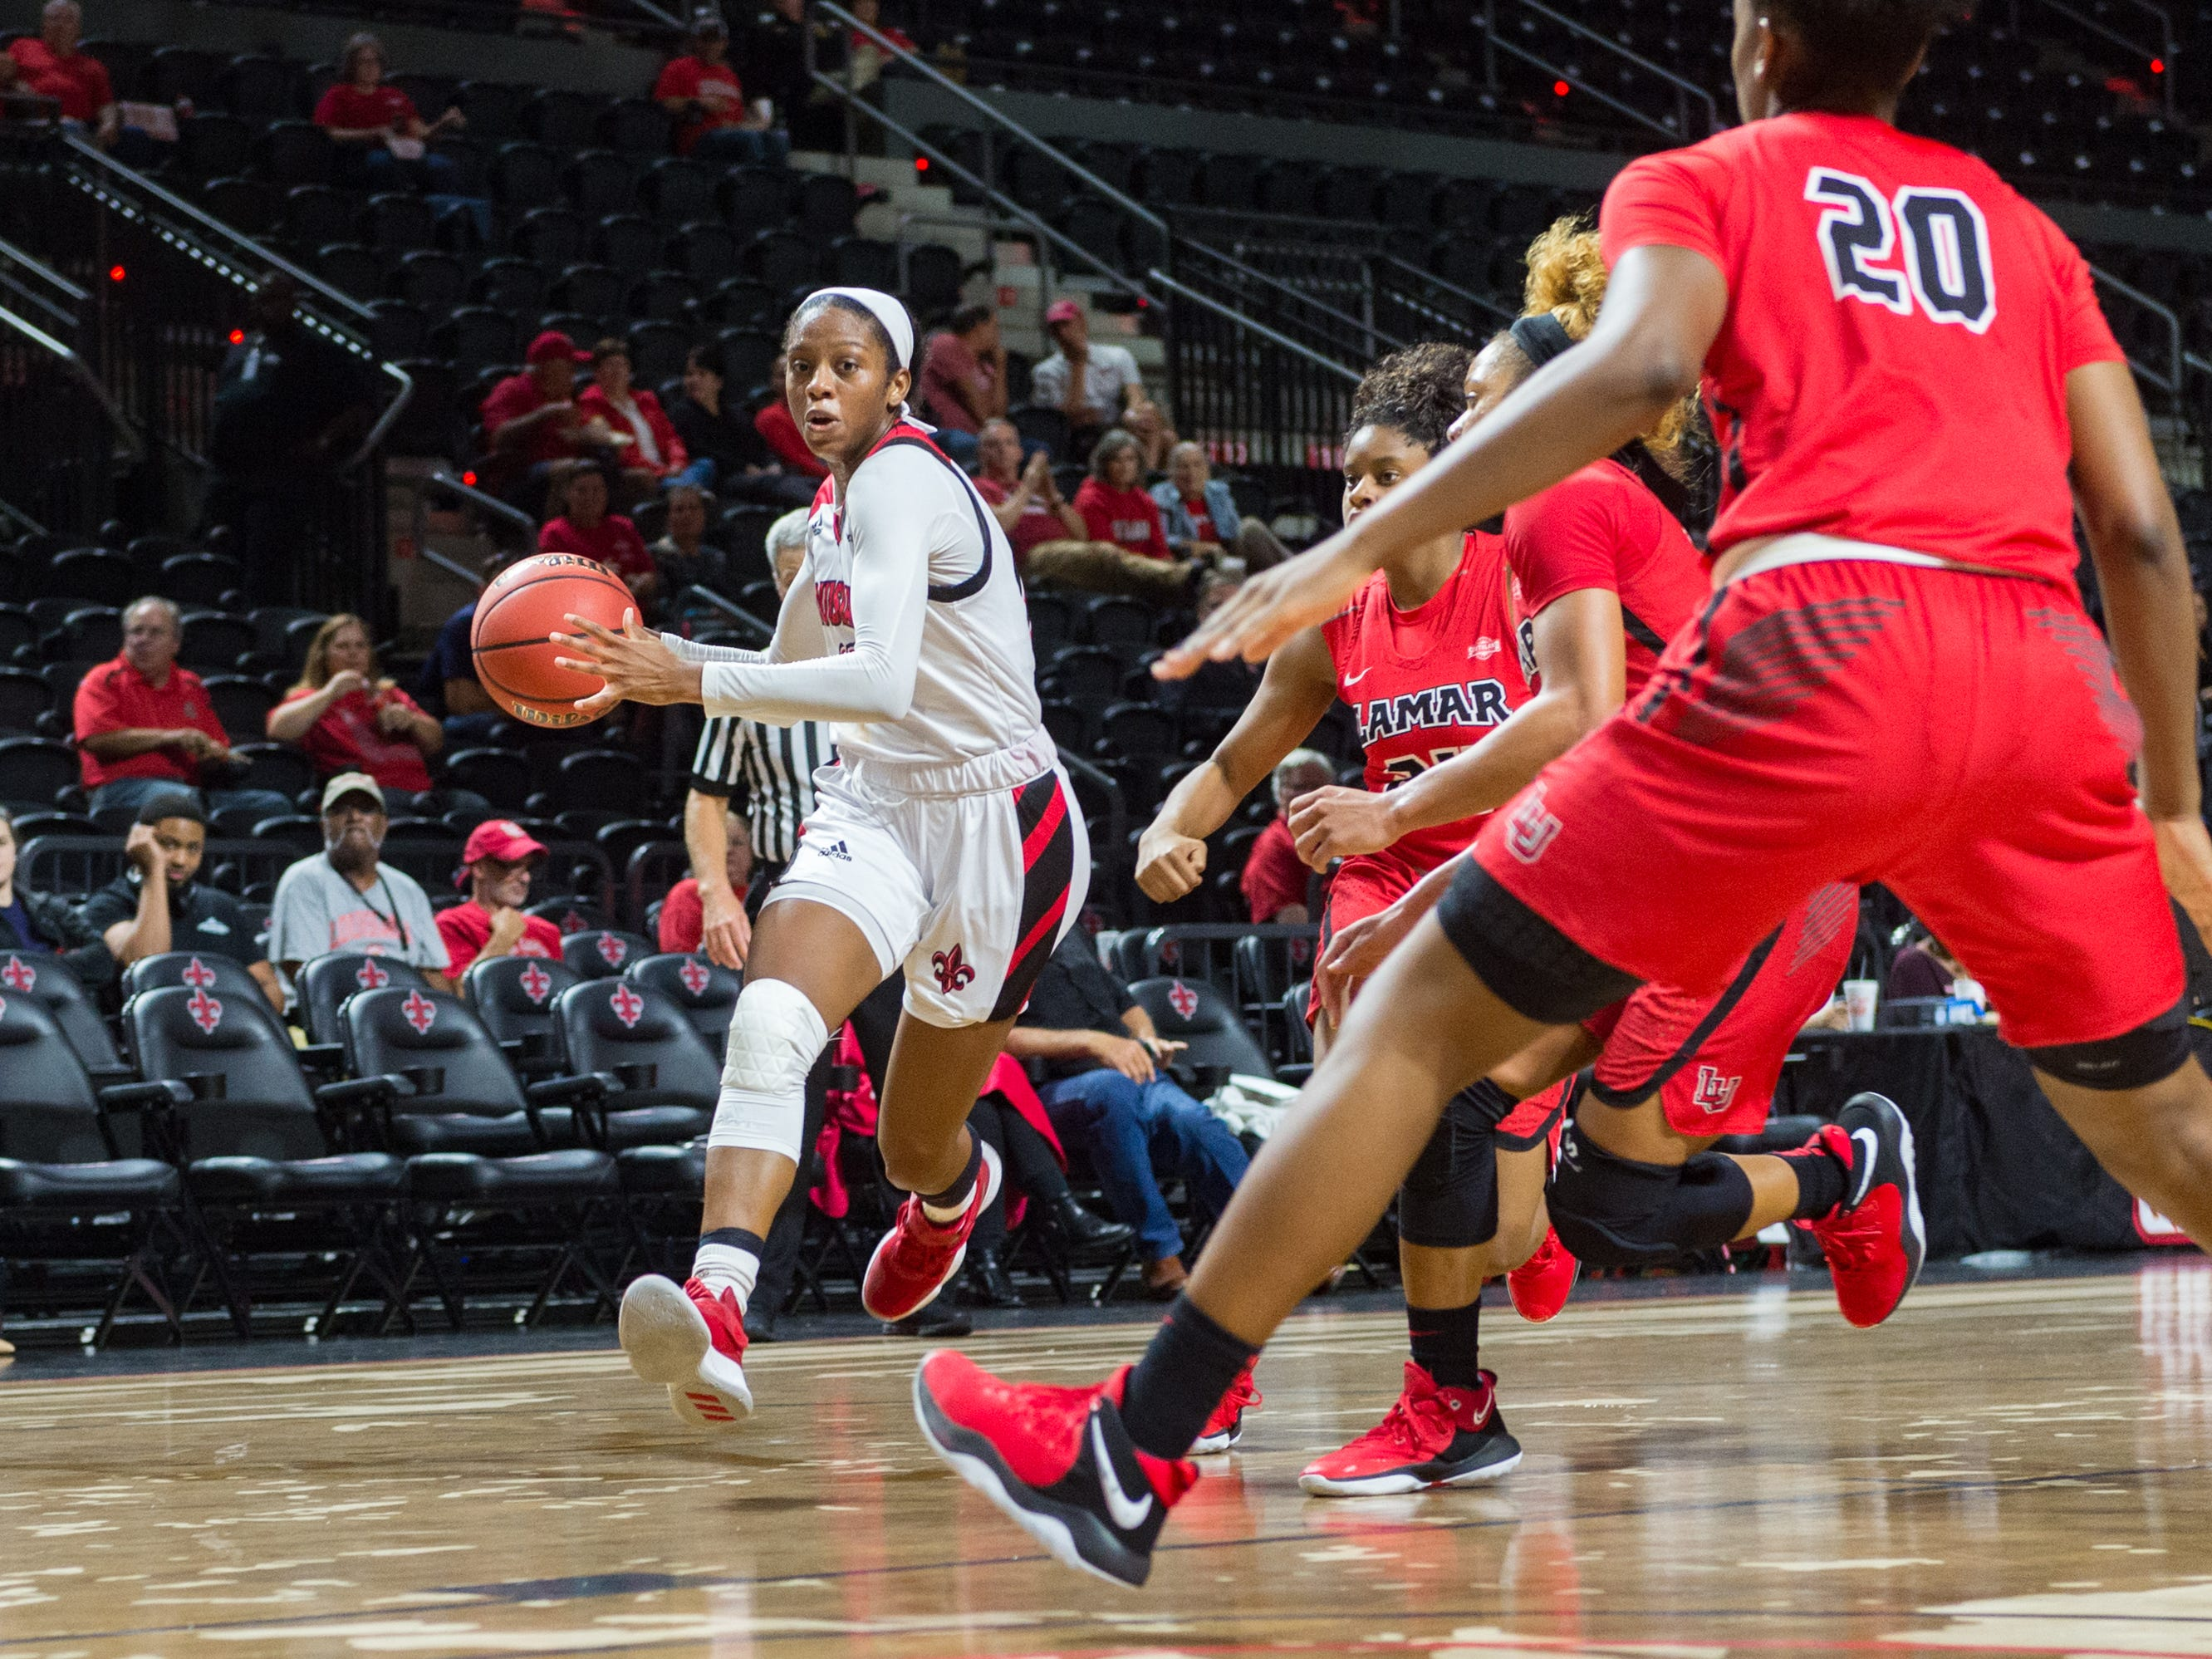 Jazmyn Womack moves the ball as the Cajuns take on Lamar in Womens Basketball. Tuesday, Nov. 6, 2018.